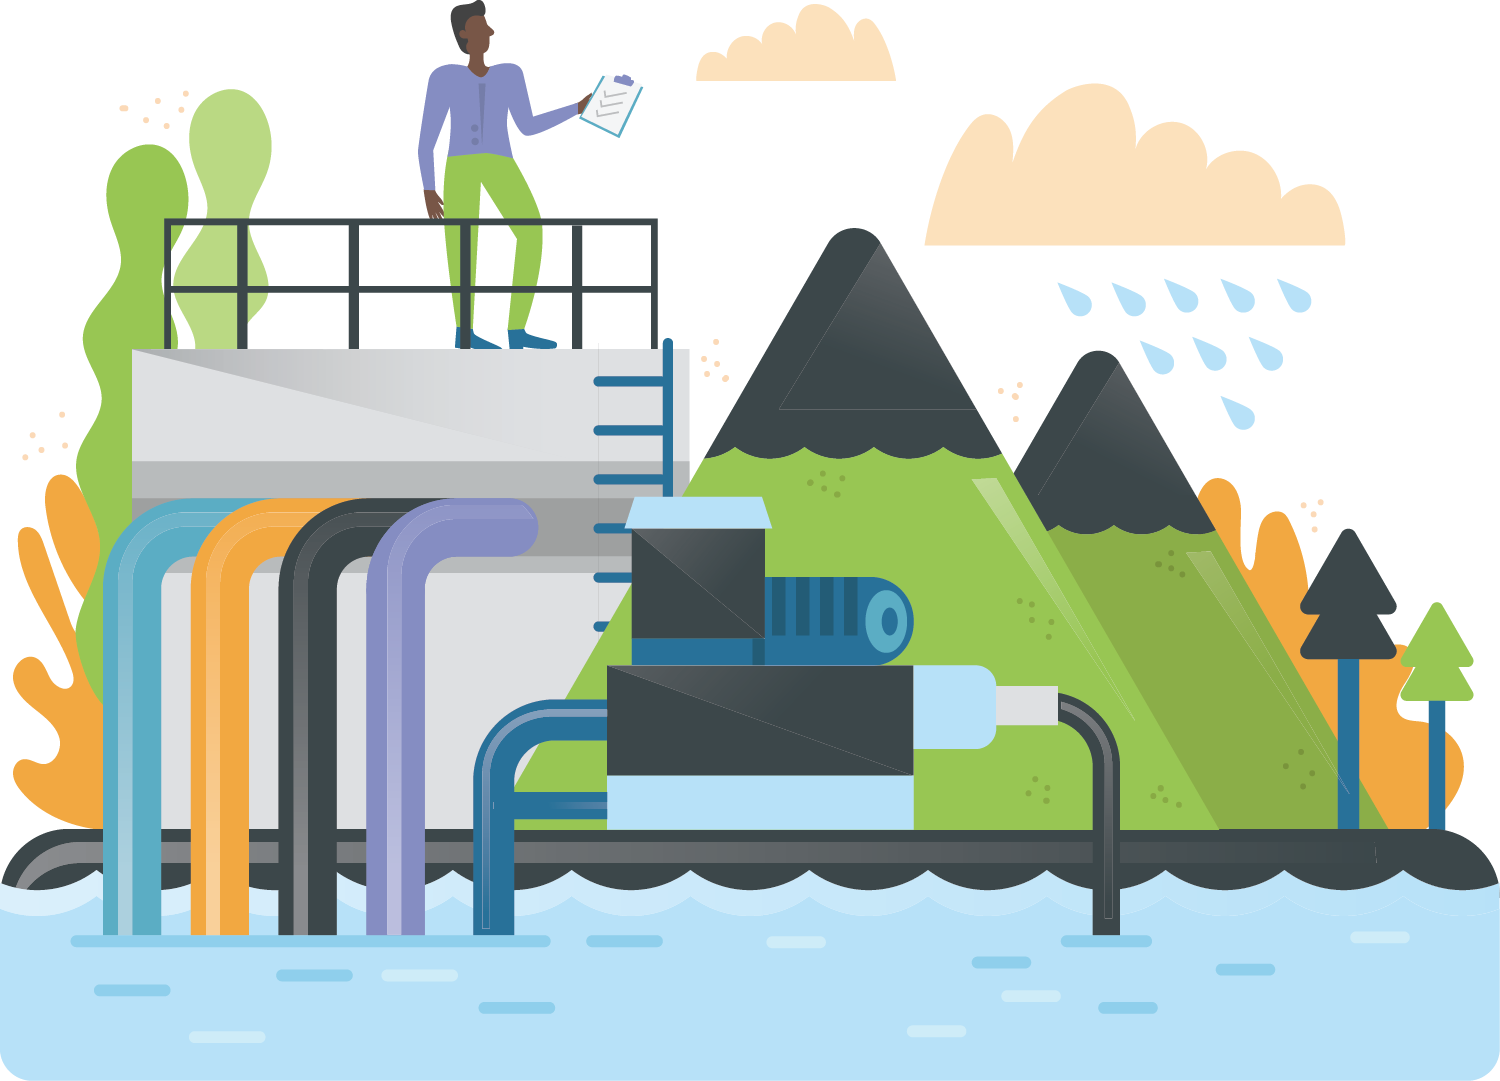 Water clipart water supply. Assess carbon neutral urban